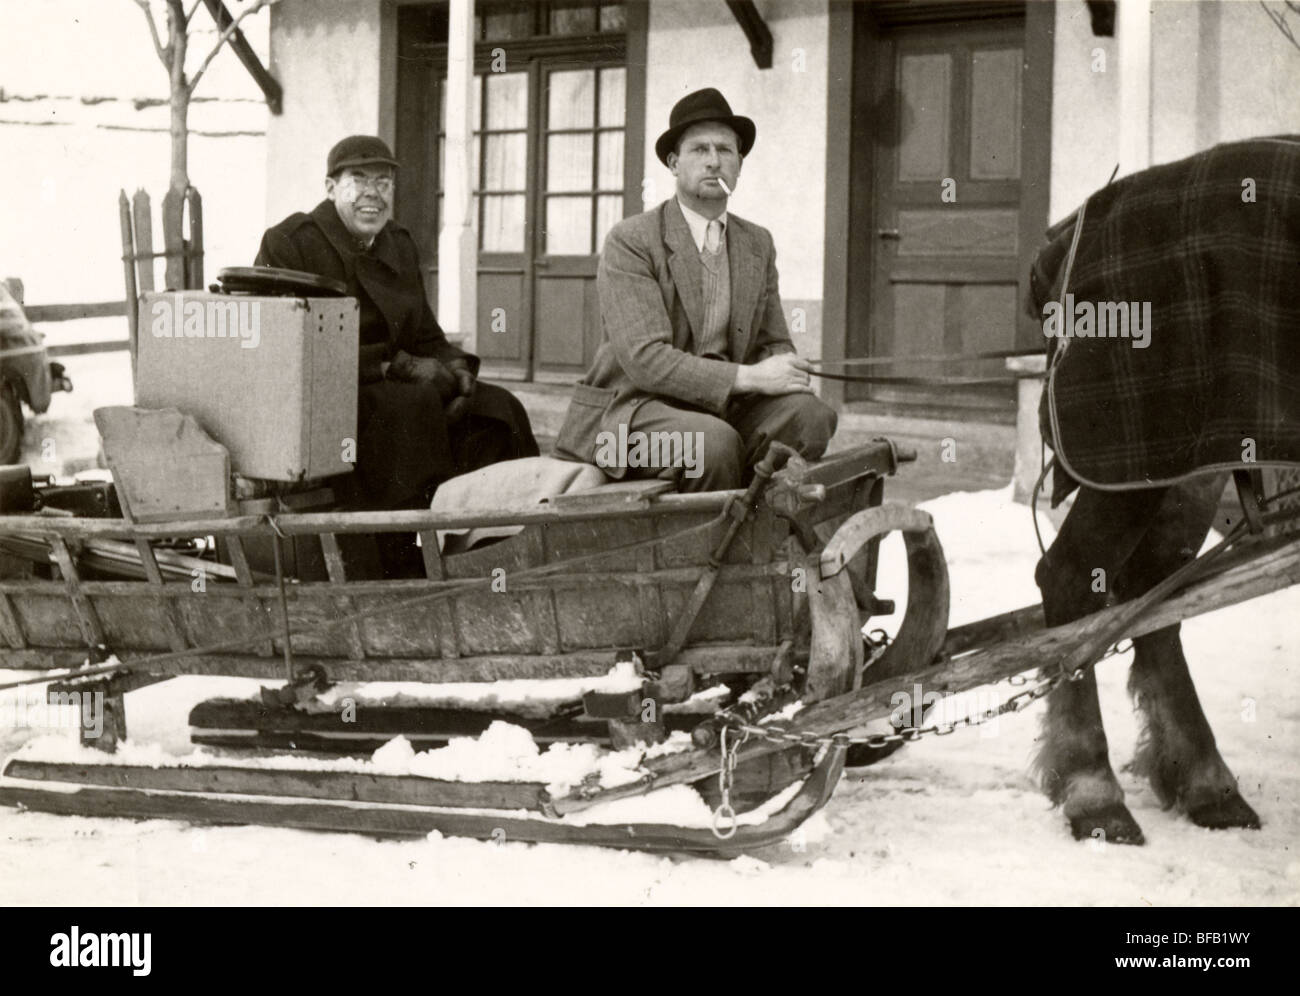 Man Driving Hotel Guest in Horse Drawn Sleigh Stock Photo